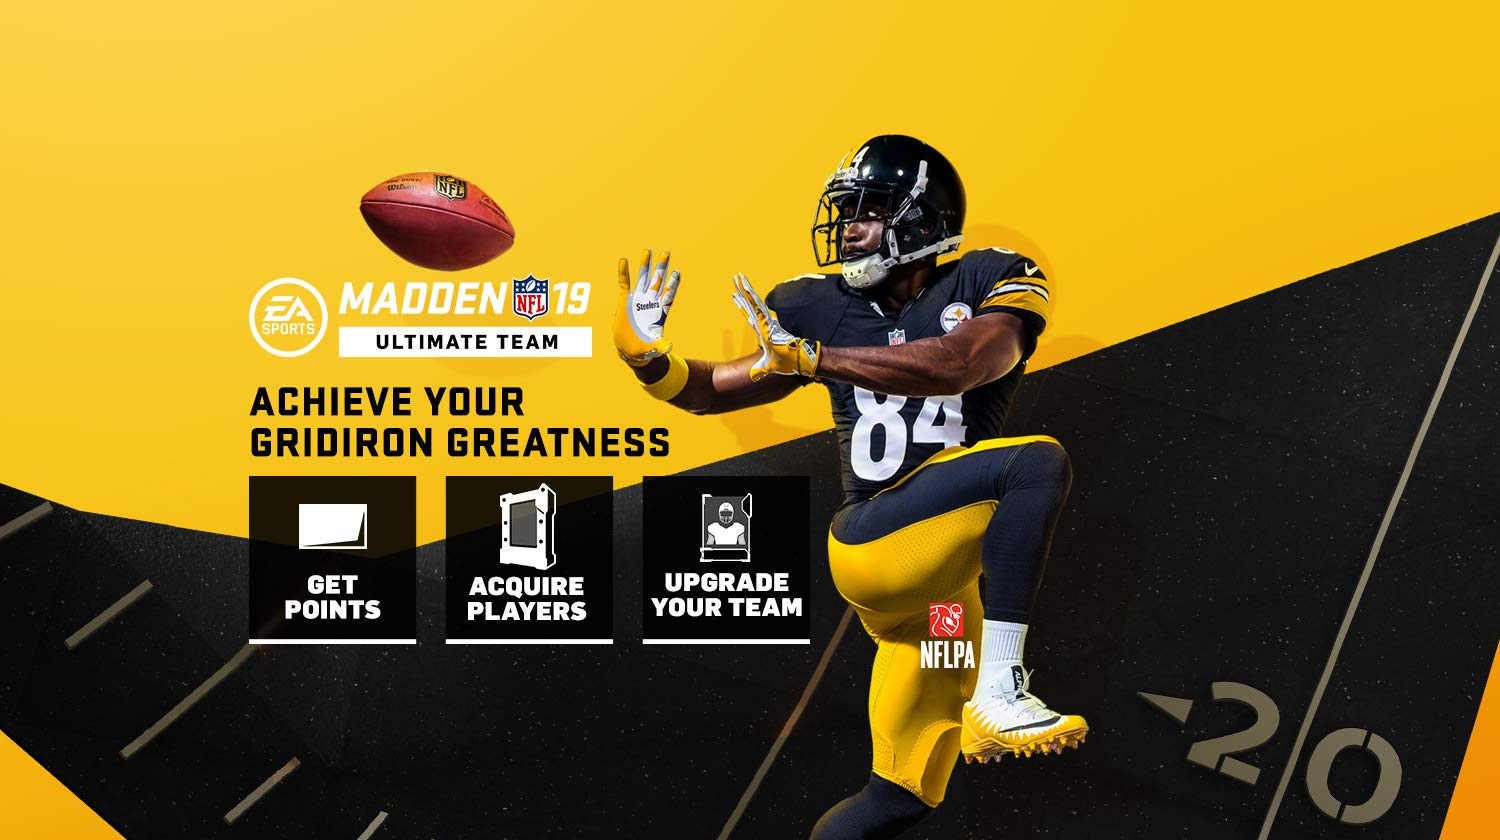 Madden NFL 19: MUT 12000 Madden Points Pack - Xbox One [Digital Code] by Electronic Arts (Image #3)